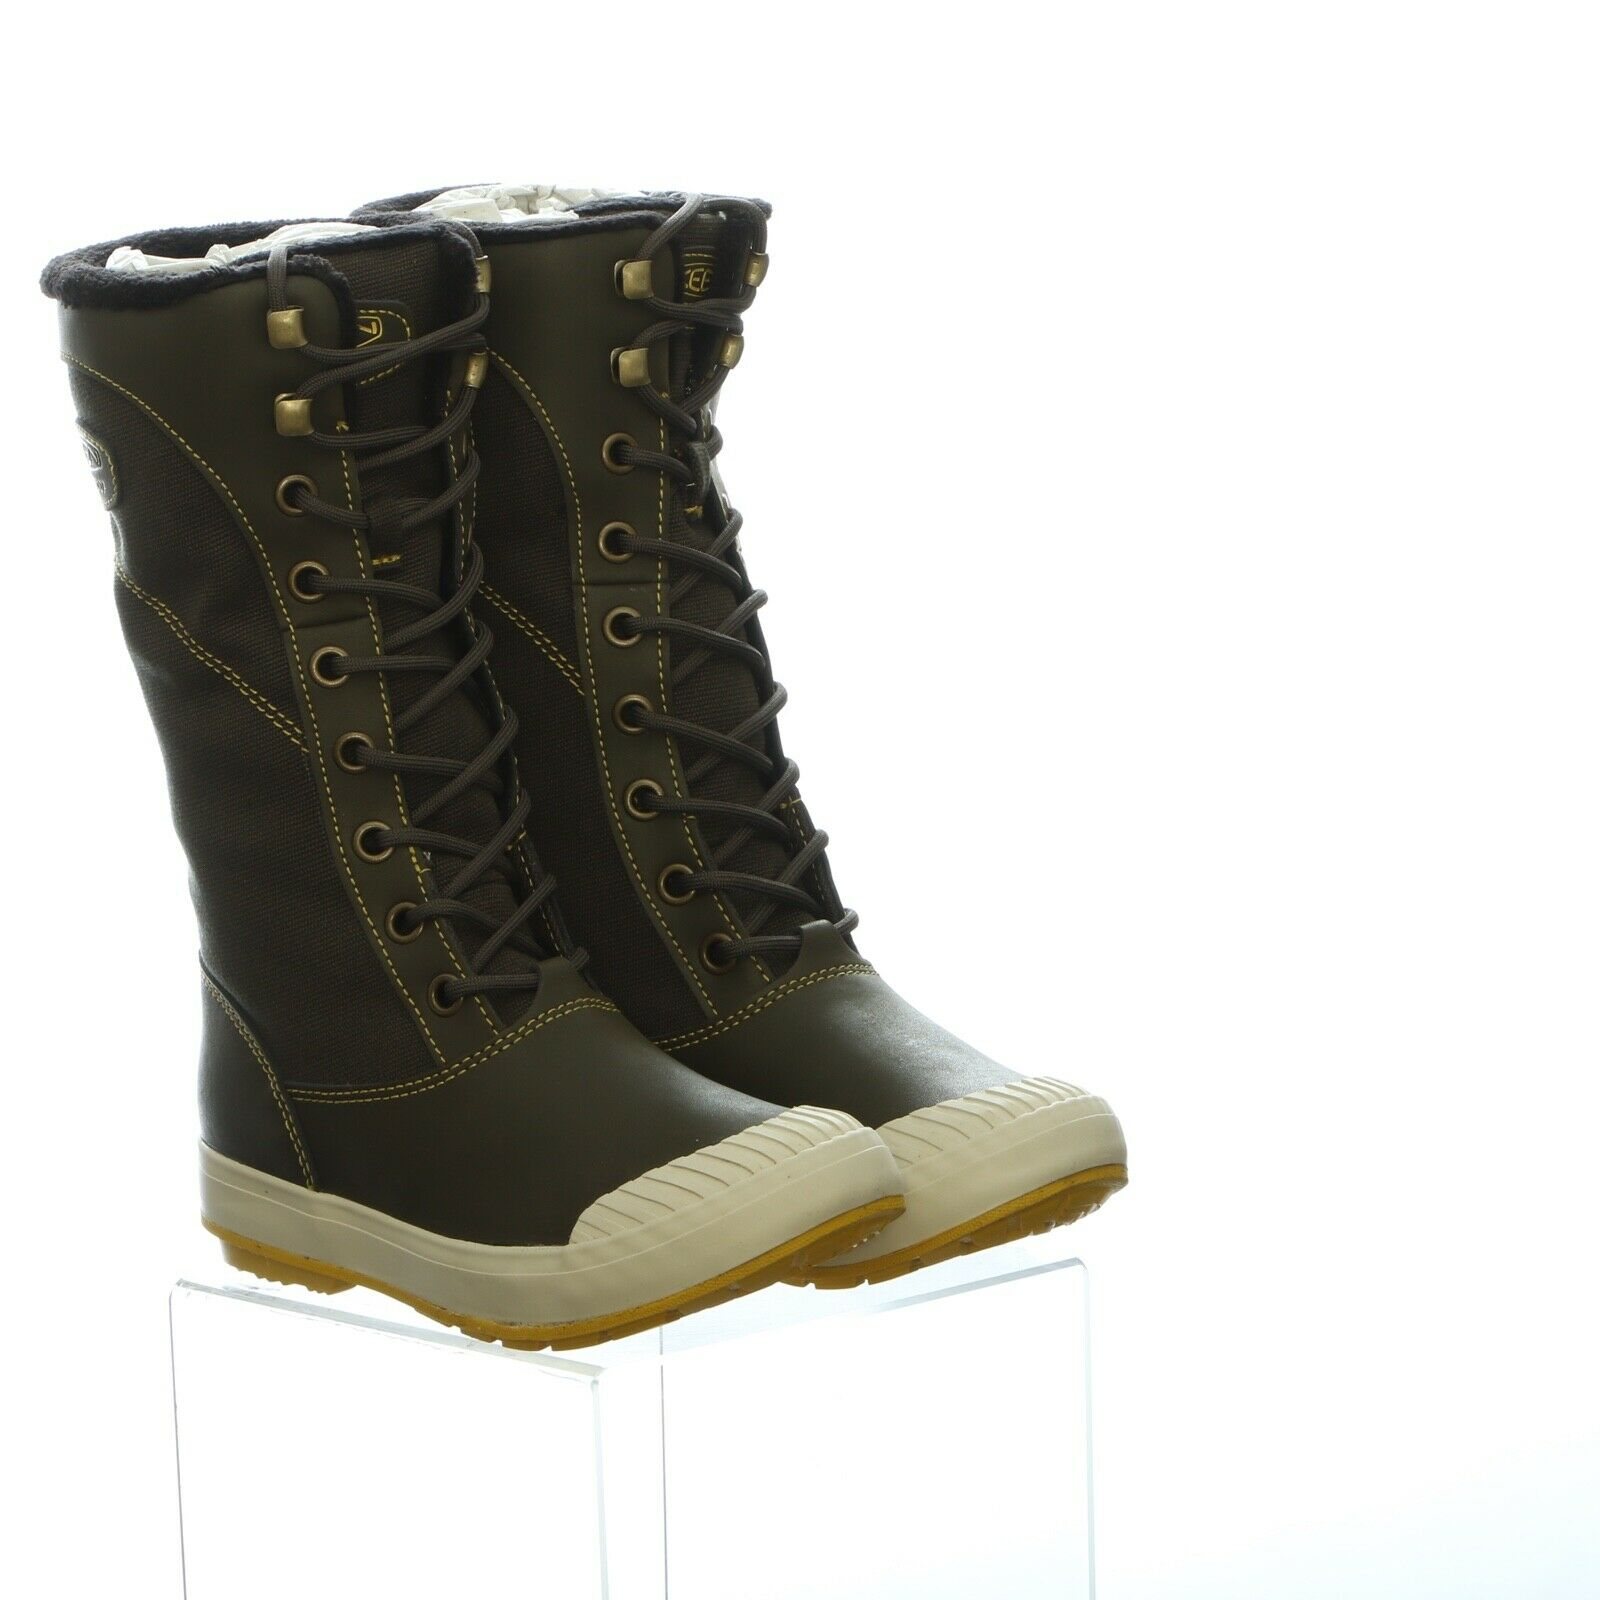 Keen  5 Womens Hiking Boots Boot Hiking  cheap and top quality